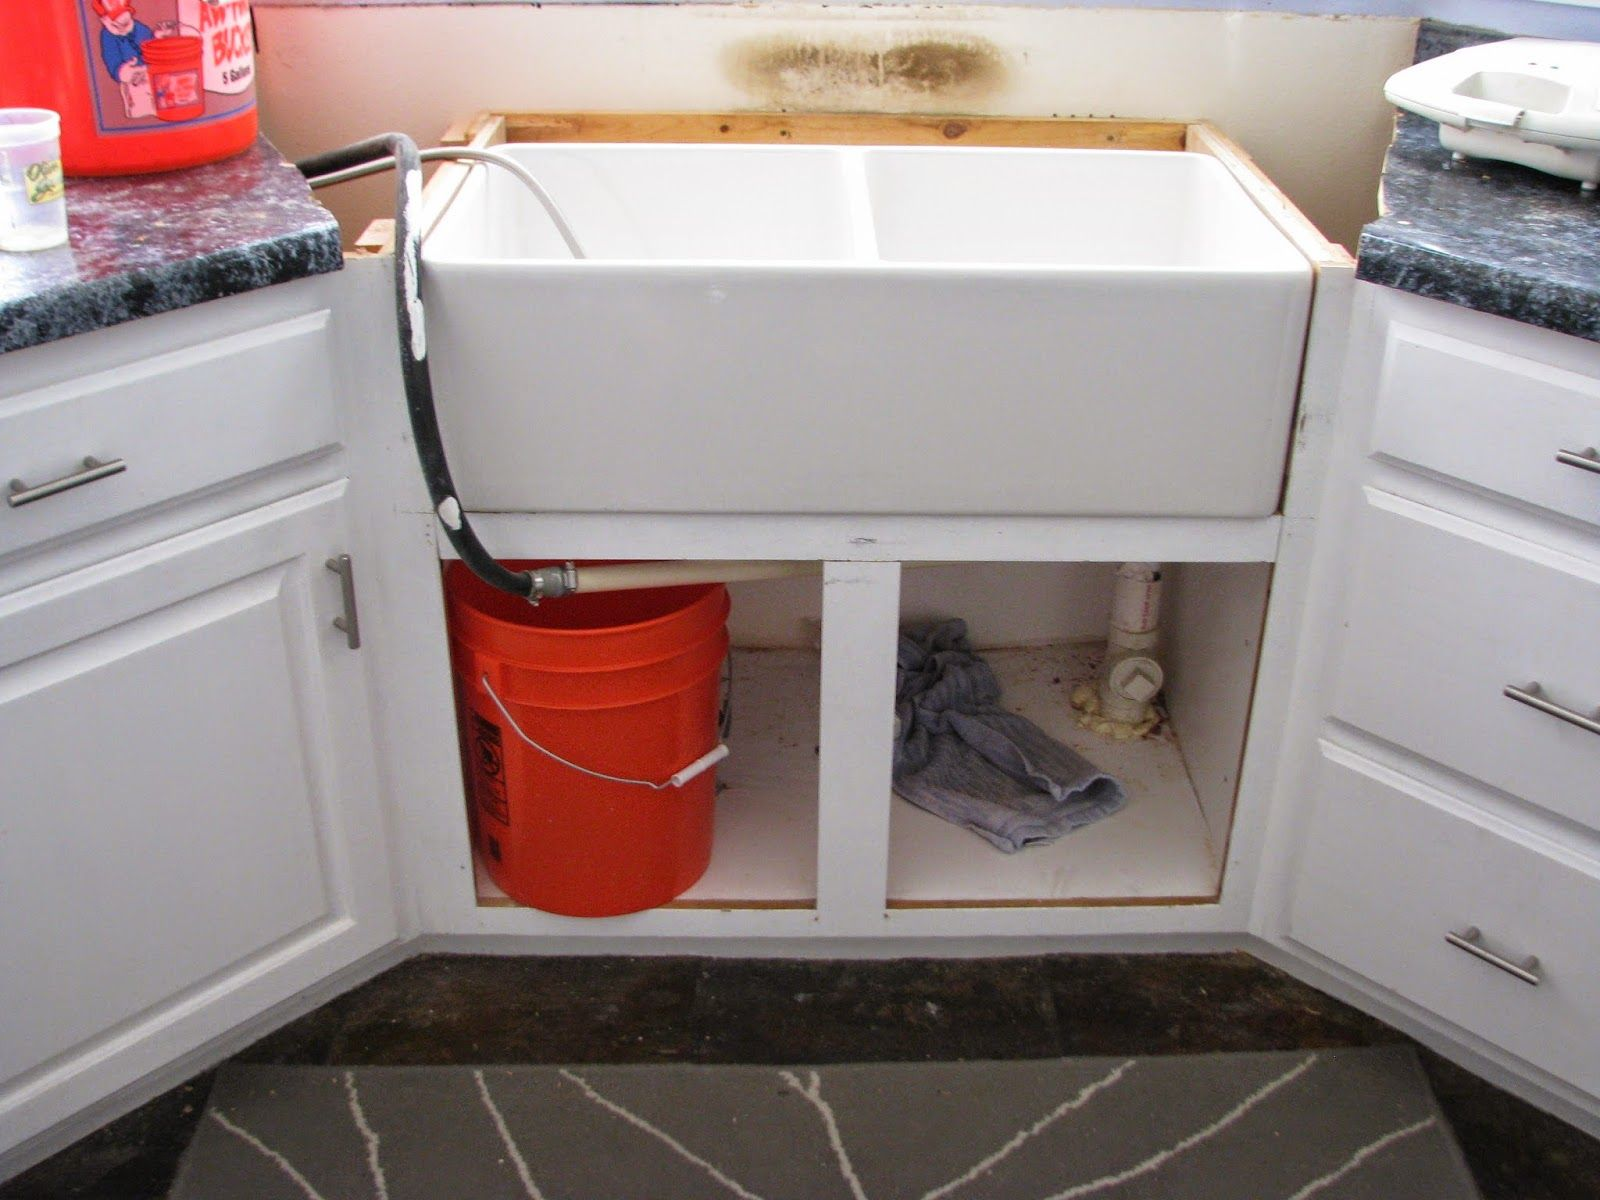 Resize Your Existing Cabinet And Doors To Fit An Apron Front Sink Apron Front Sink Kitchen Sink Diy Cabinet Remodel